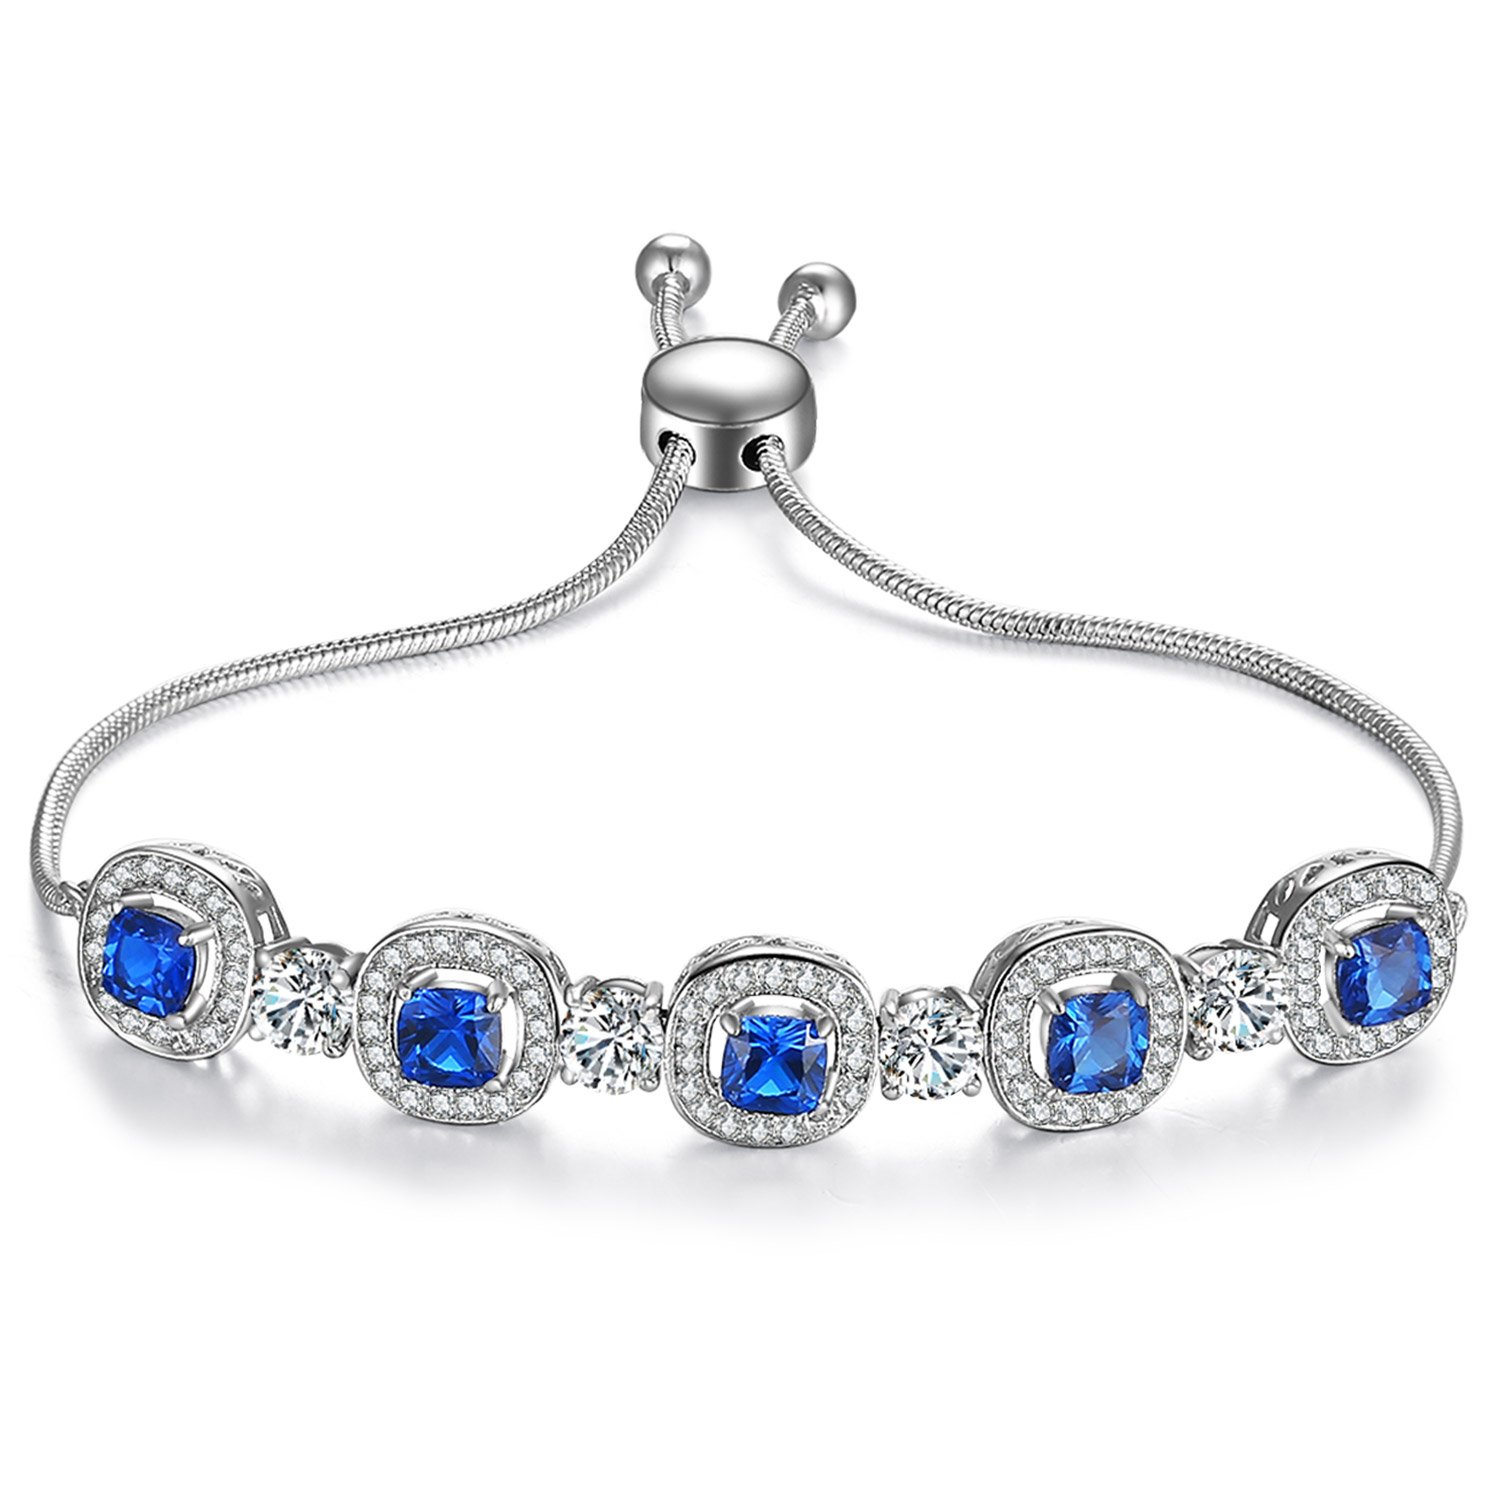 Caperci Adjustable White Gold Plated Cushion-Cut Blue Sapphire Jewelry Bolo Bracelet for Women